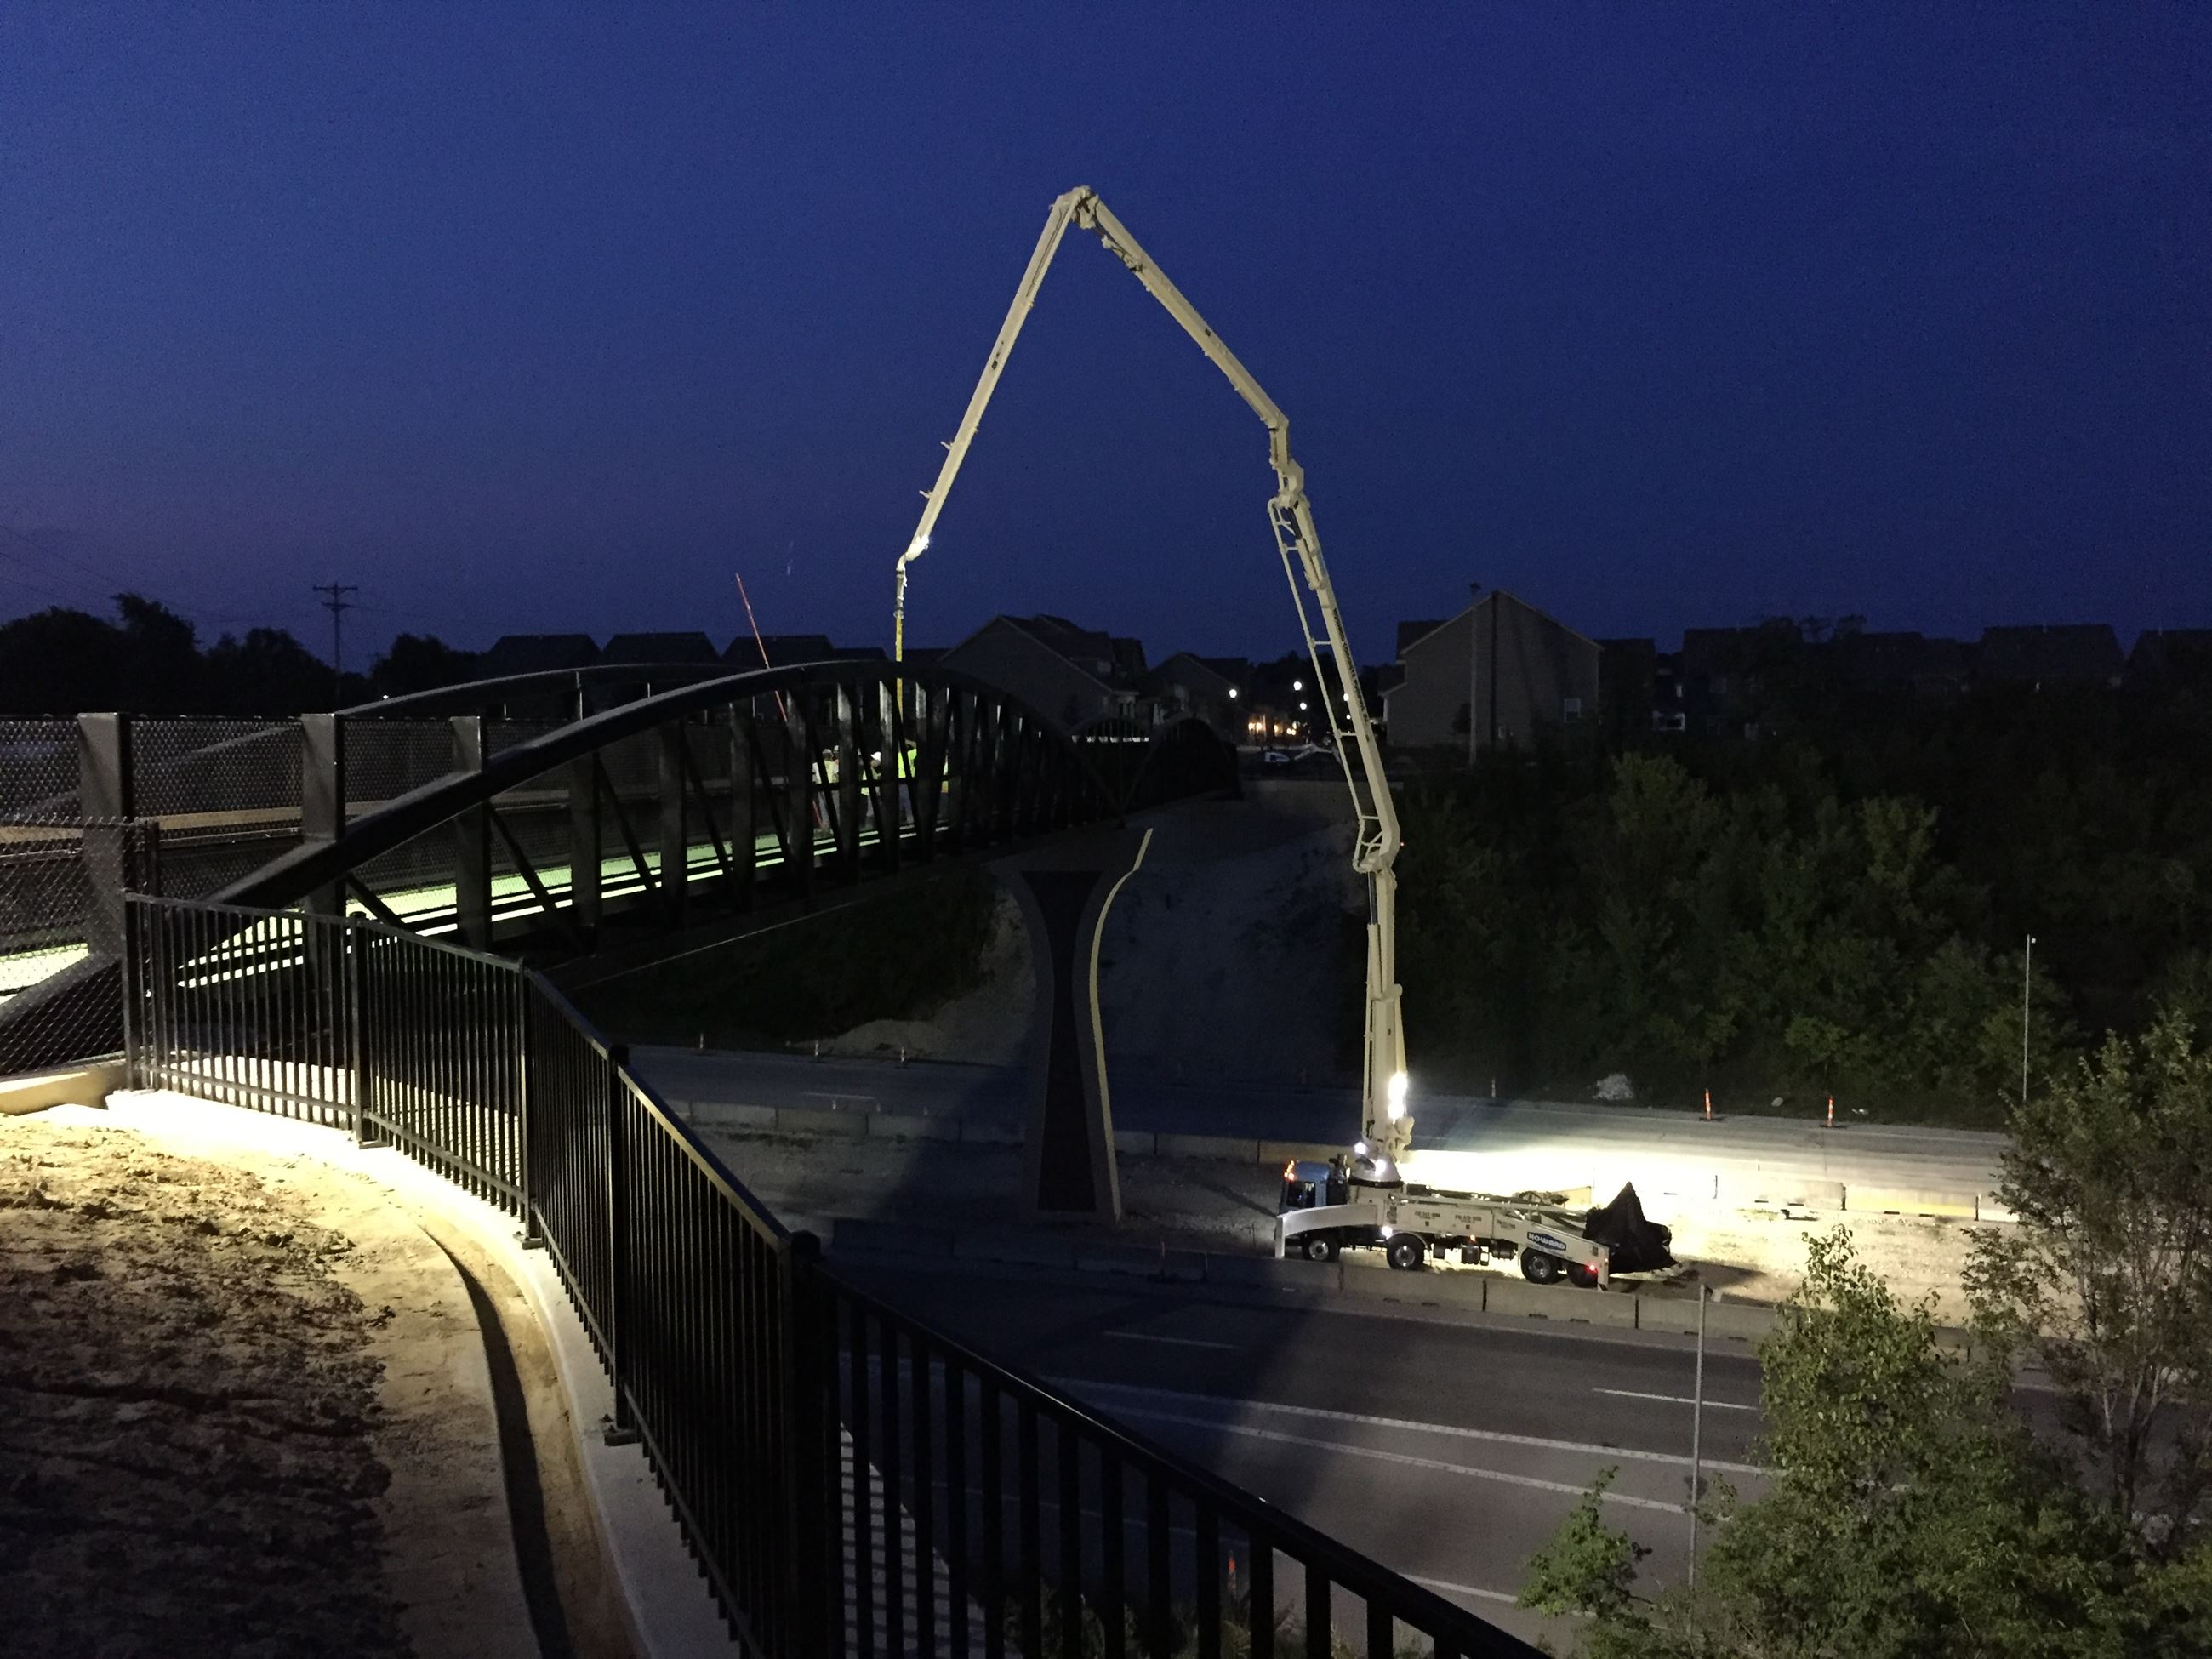 Construction being done at night